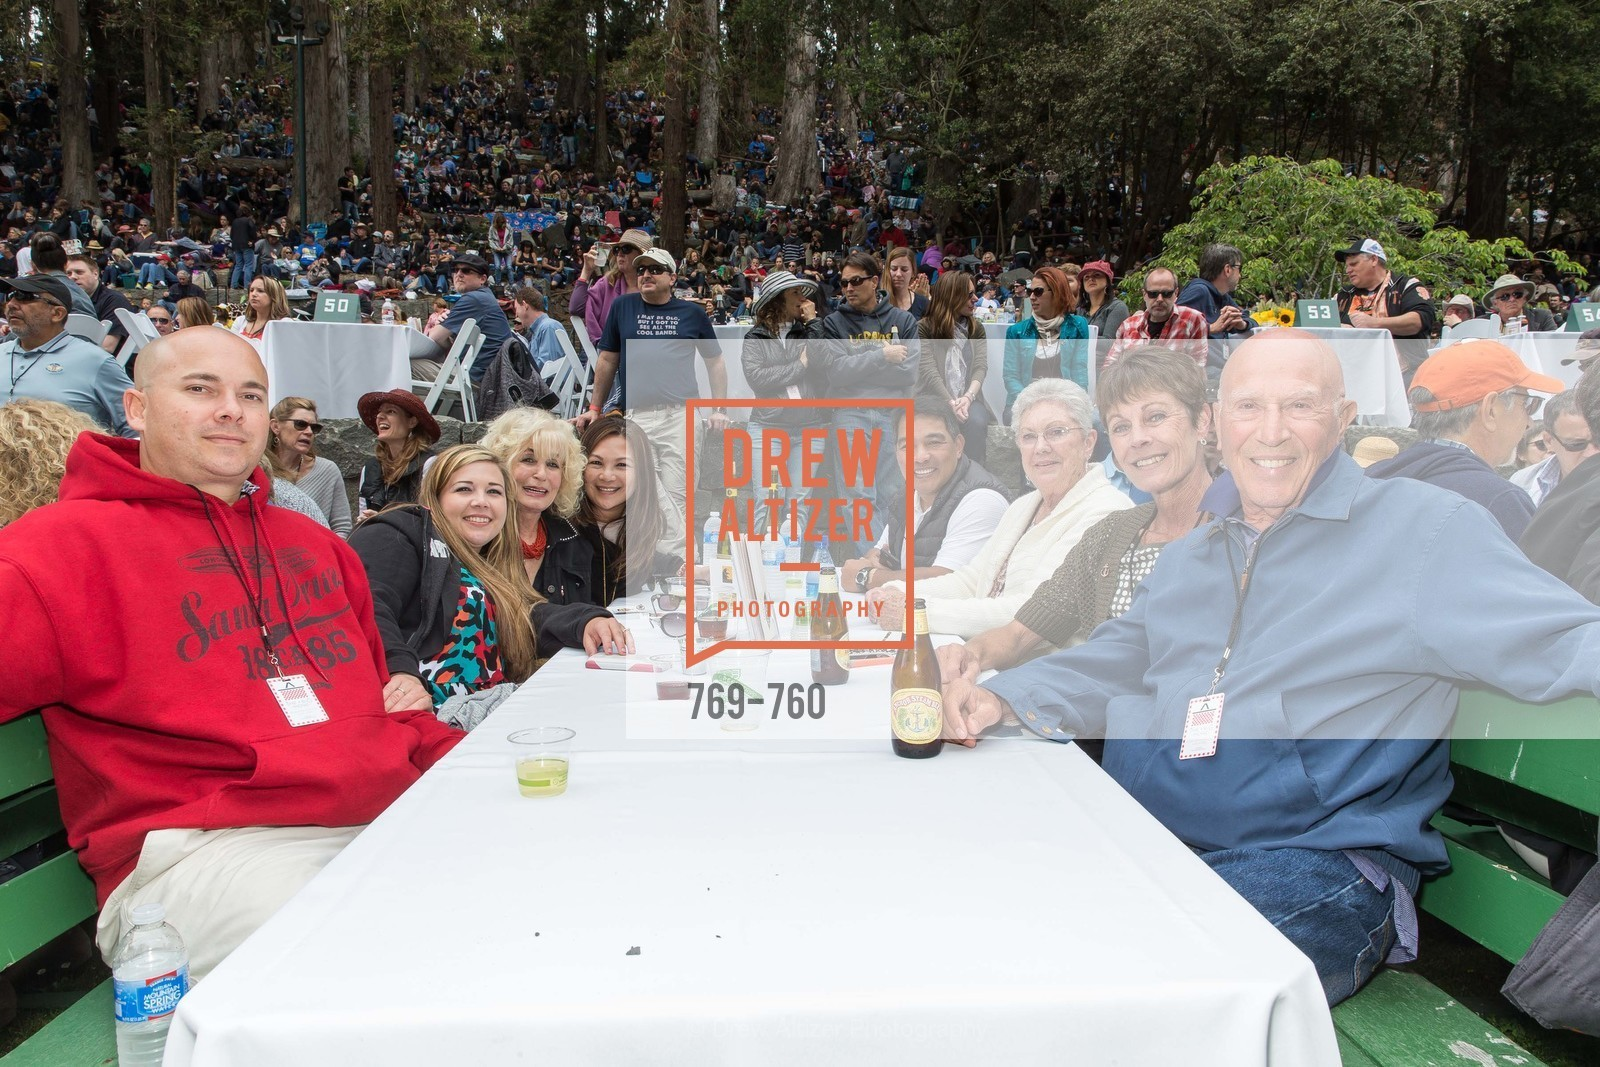 Chris Romero, Amanda Ramiro, Lea Orwitz, Allen Horowitz, The Big Picnic! A Benefit & Concert for STERN GROVE FESTIVAL, US, June 14th, 2015,Drew Altizer, Drew Altizer Photography, full-service agency, private events, San Francisco photographer, photographer california